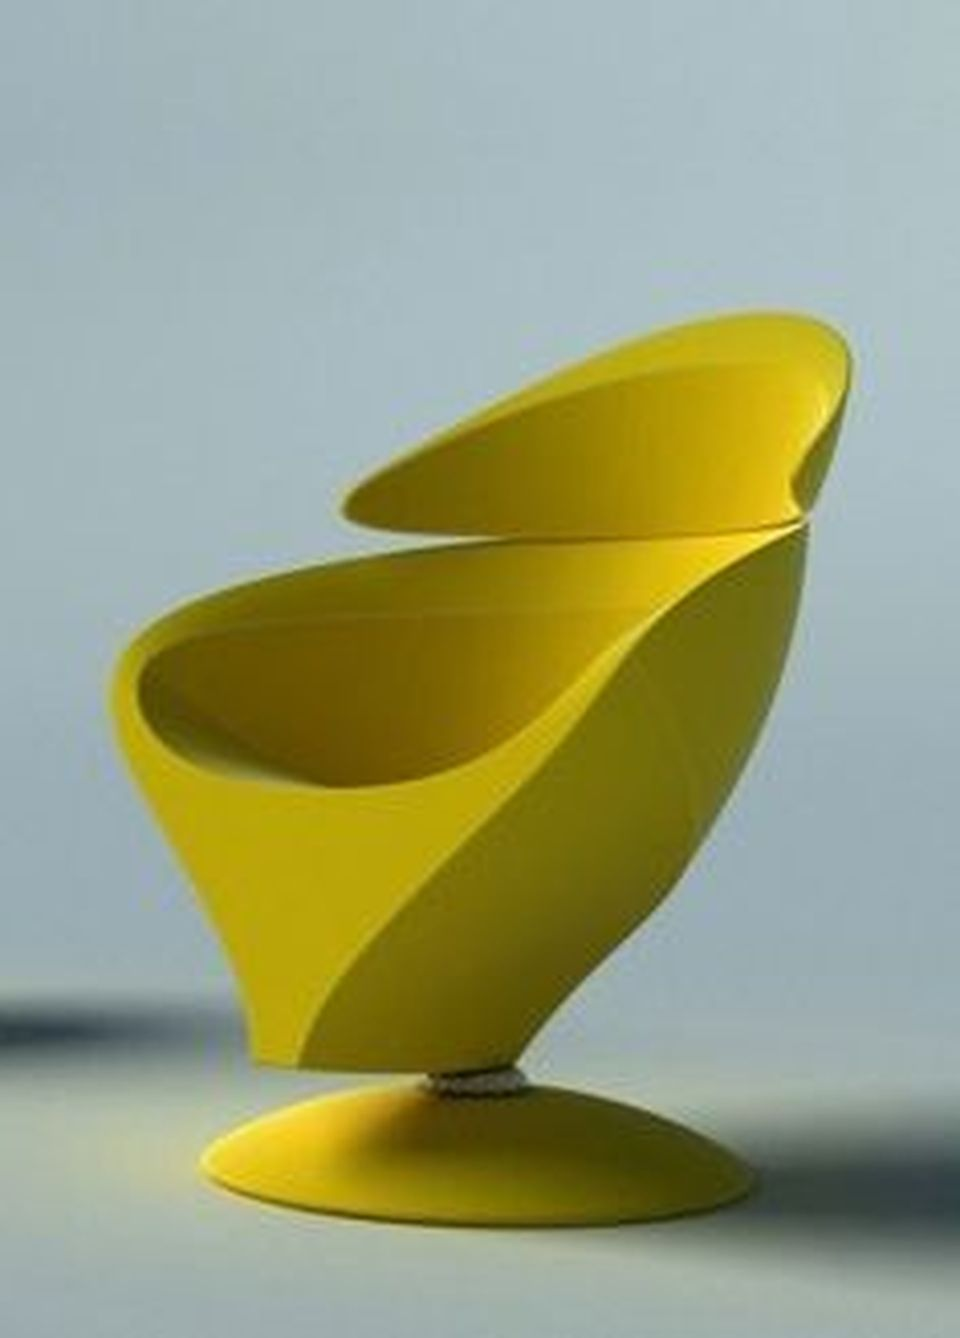 futuristic furniture design. Amazing Modern Futuristic Furniture Design And Concept 28 A